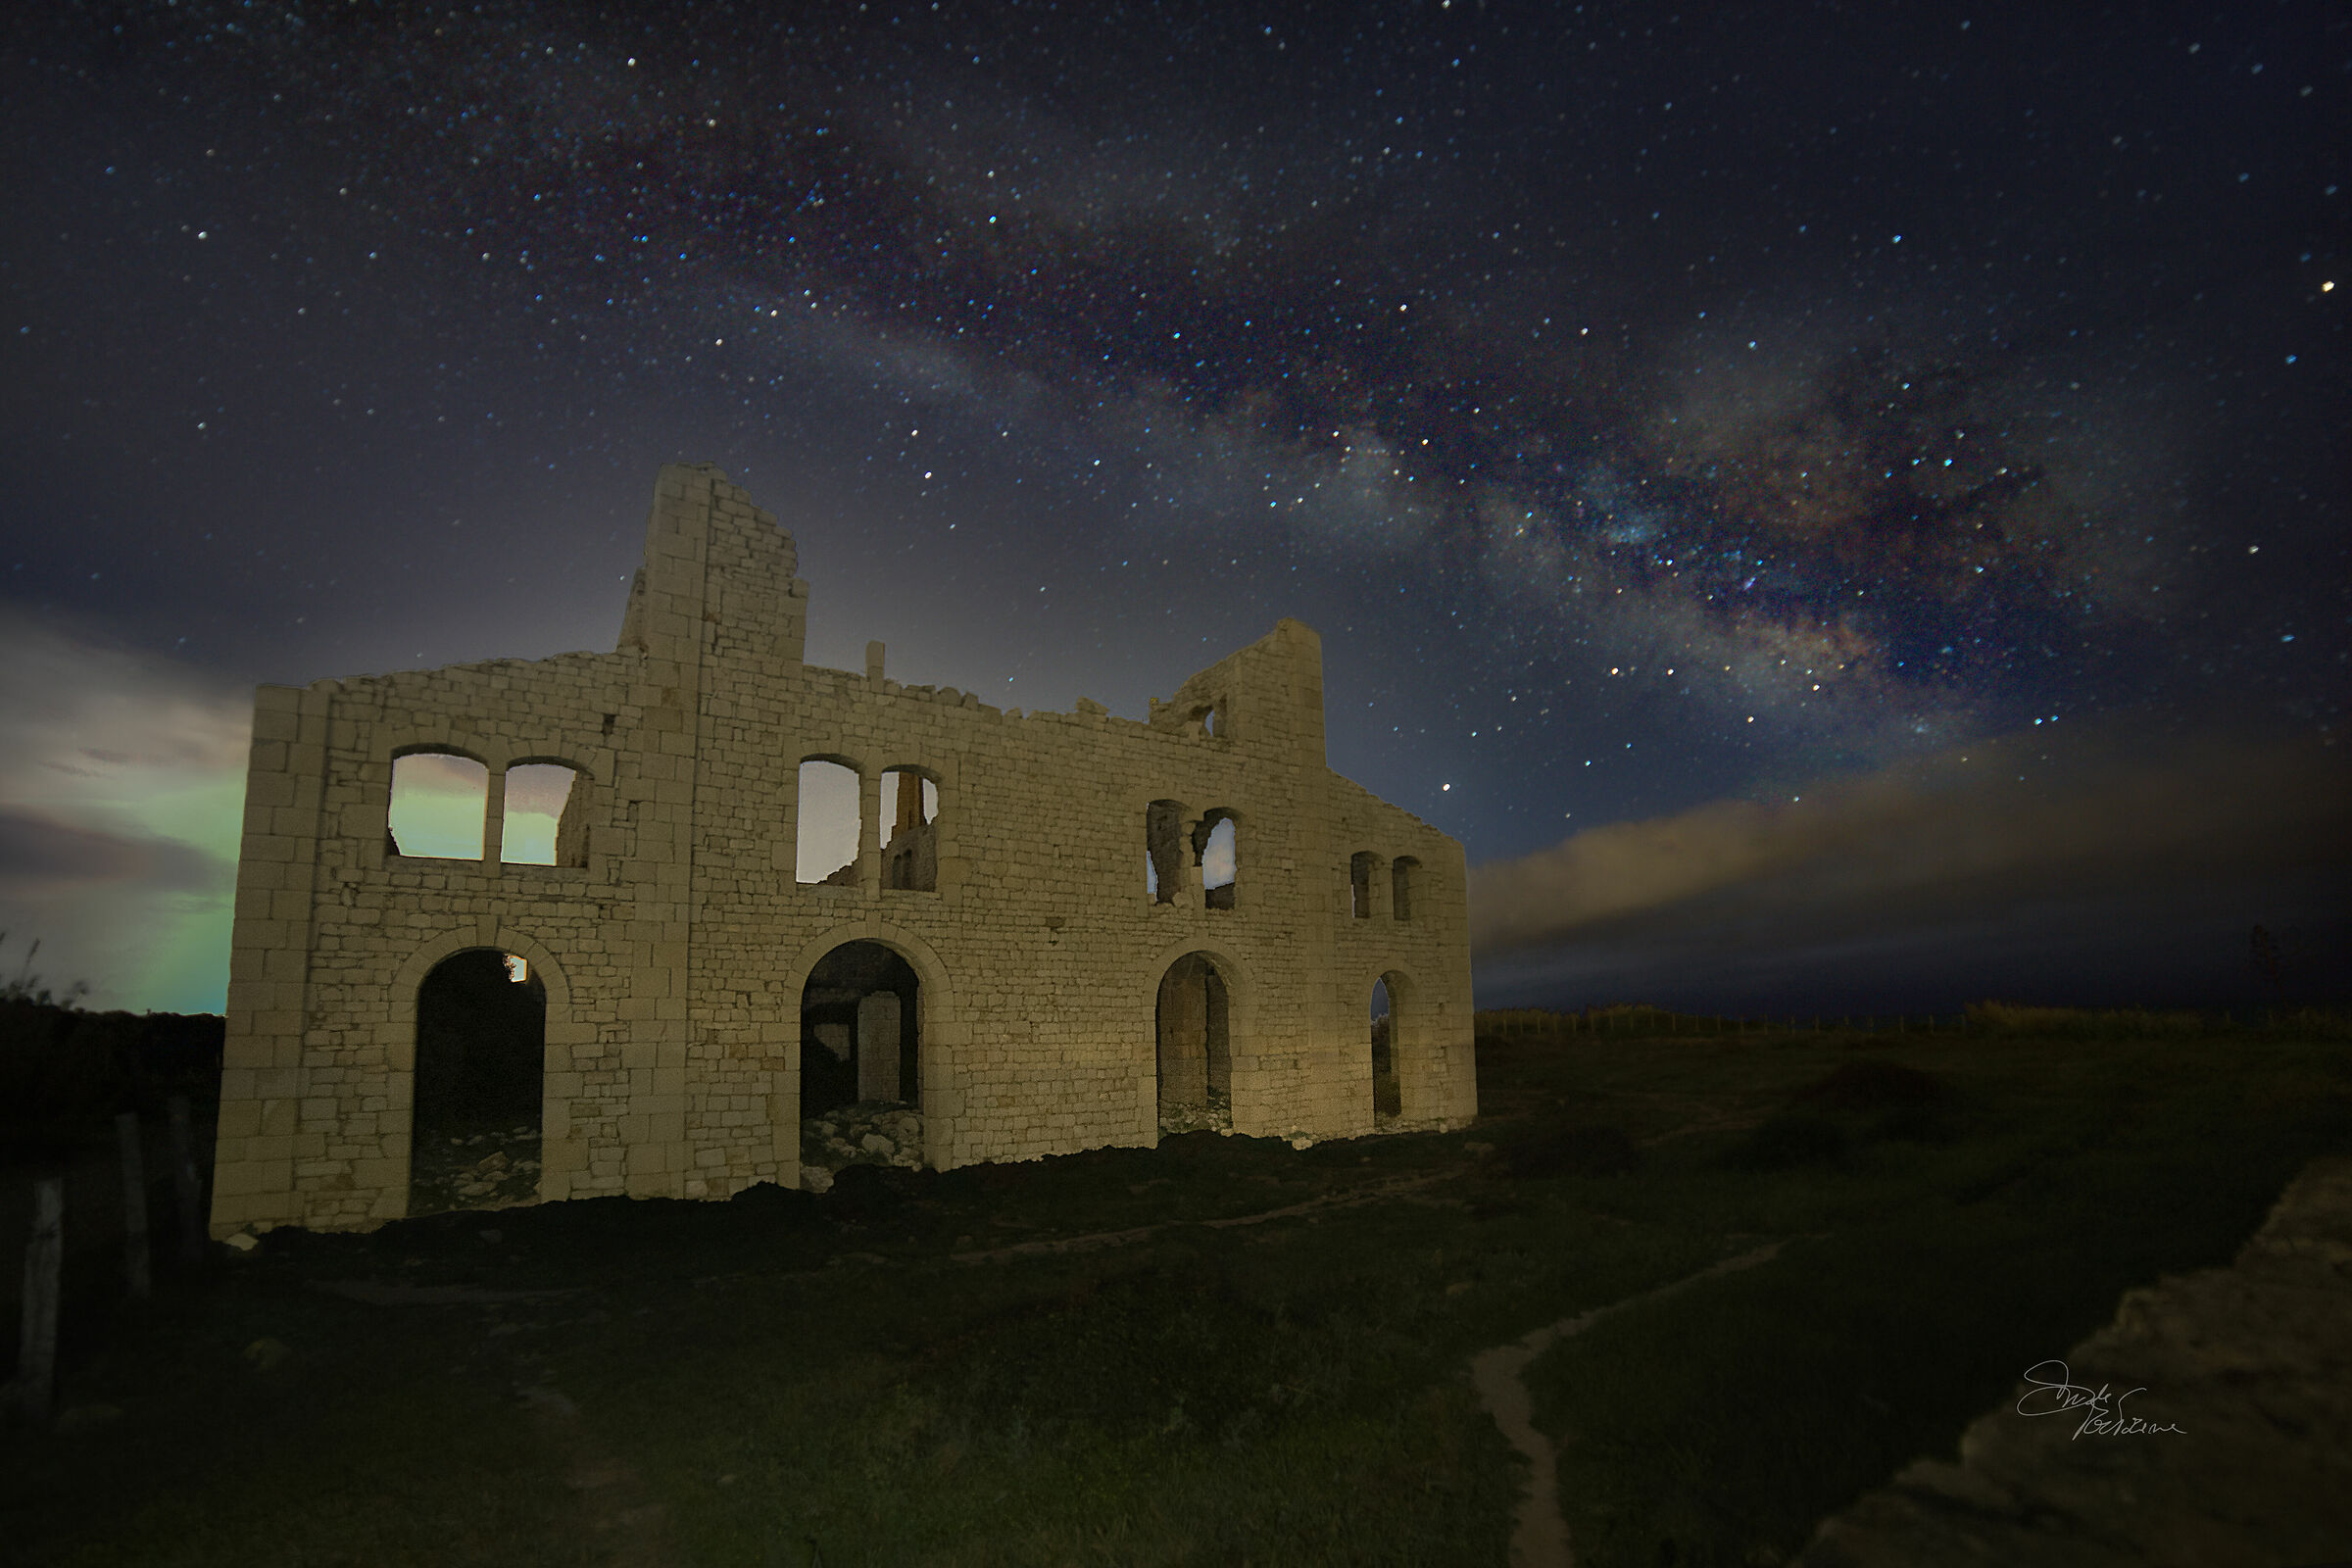 Milky Way from the Pen Furnace...